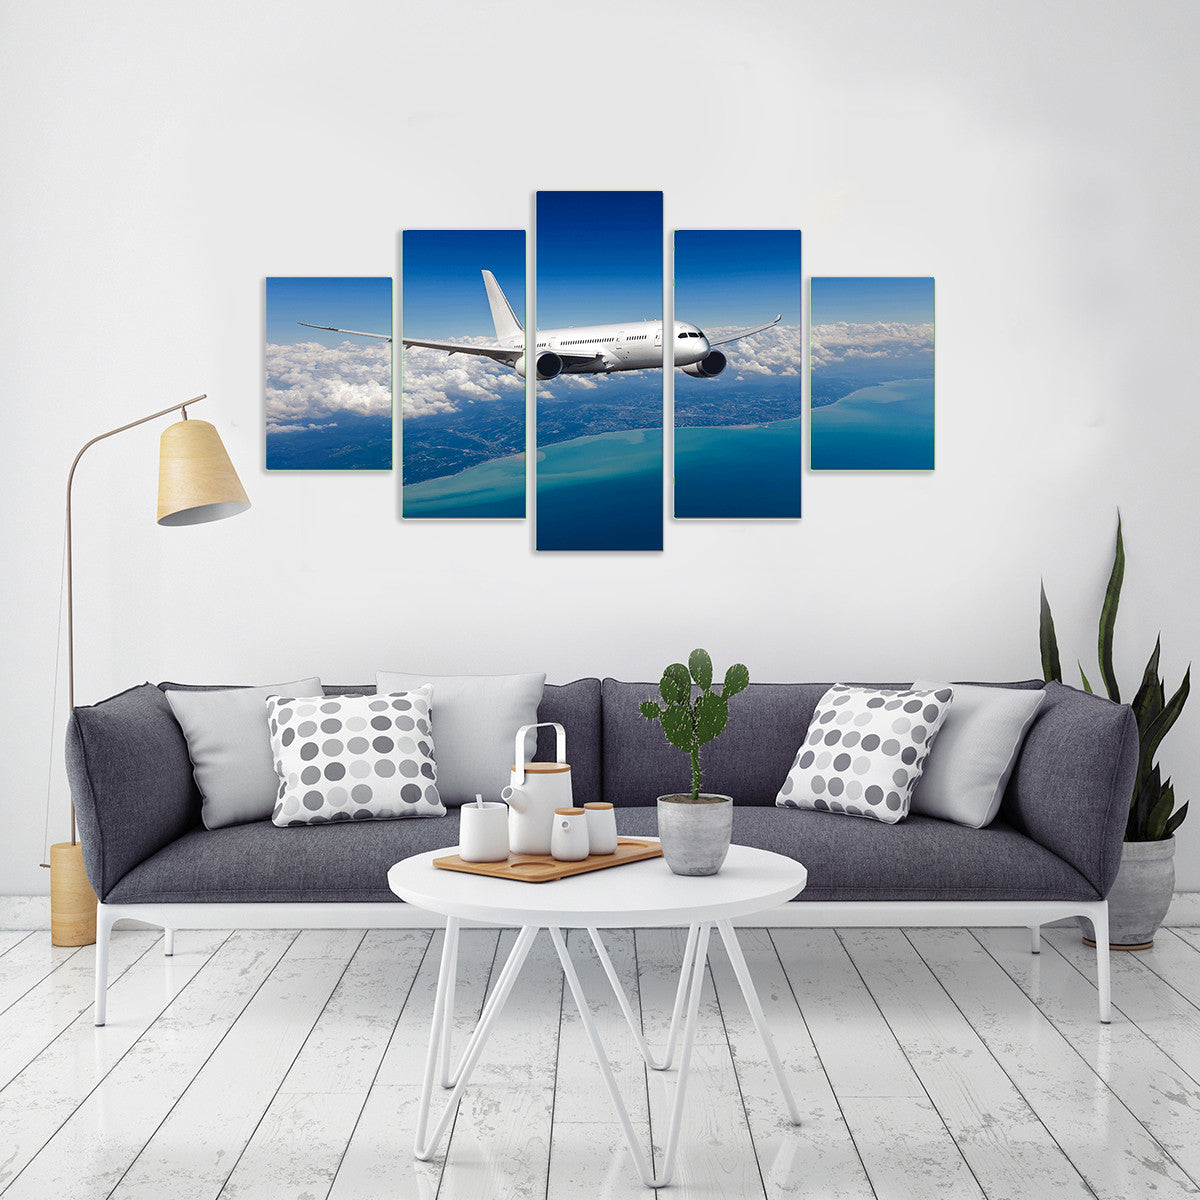 Flying Above Clouds 5 Piece Canvas